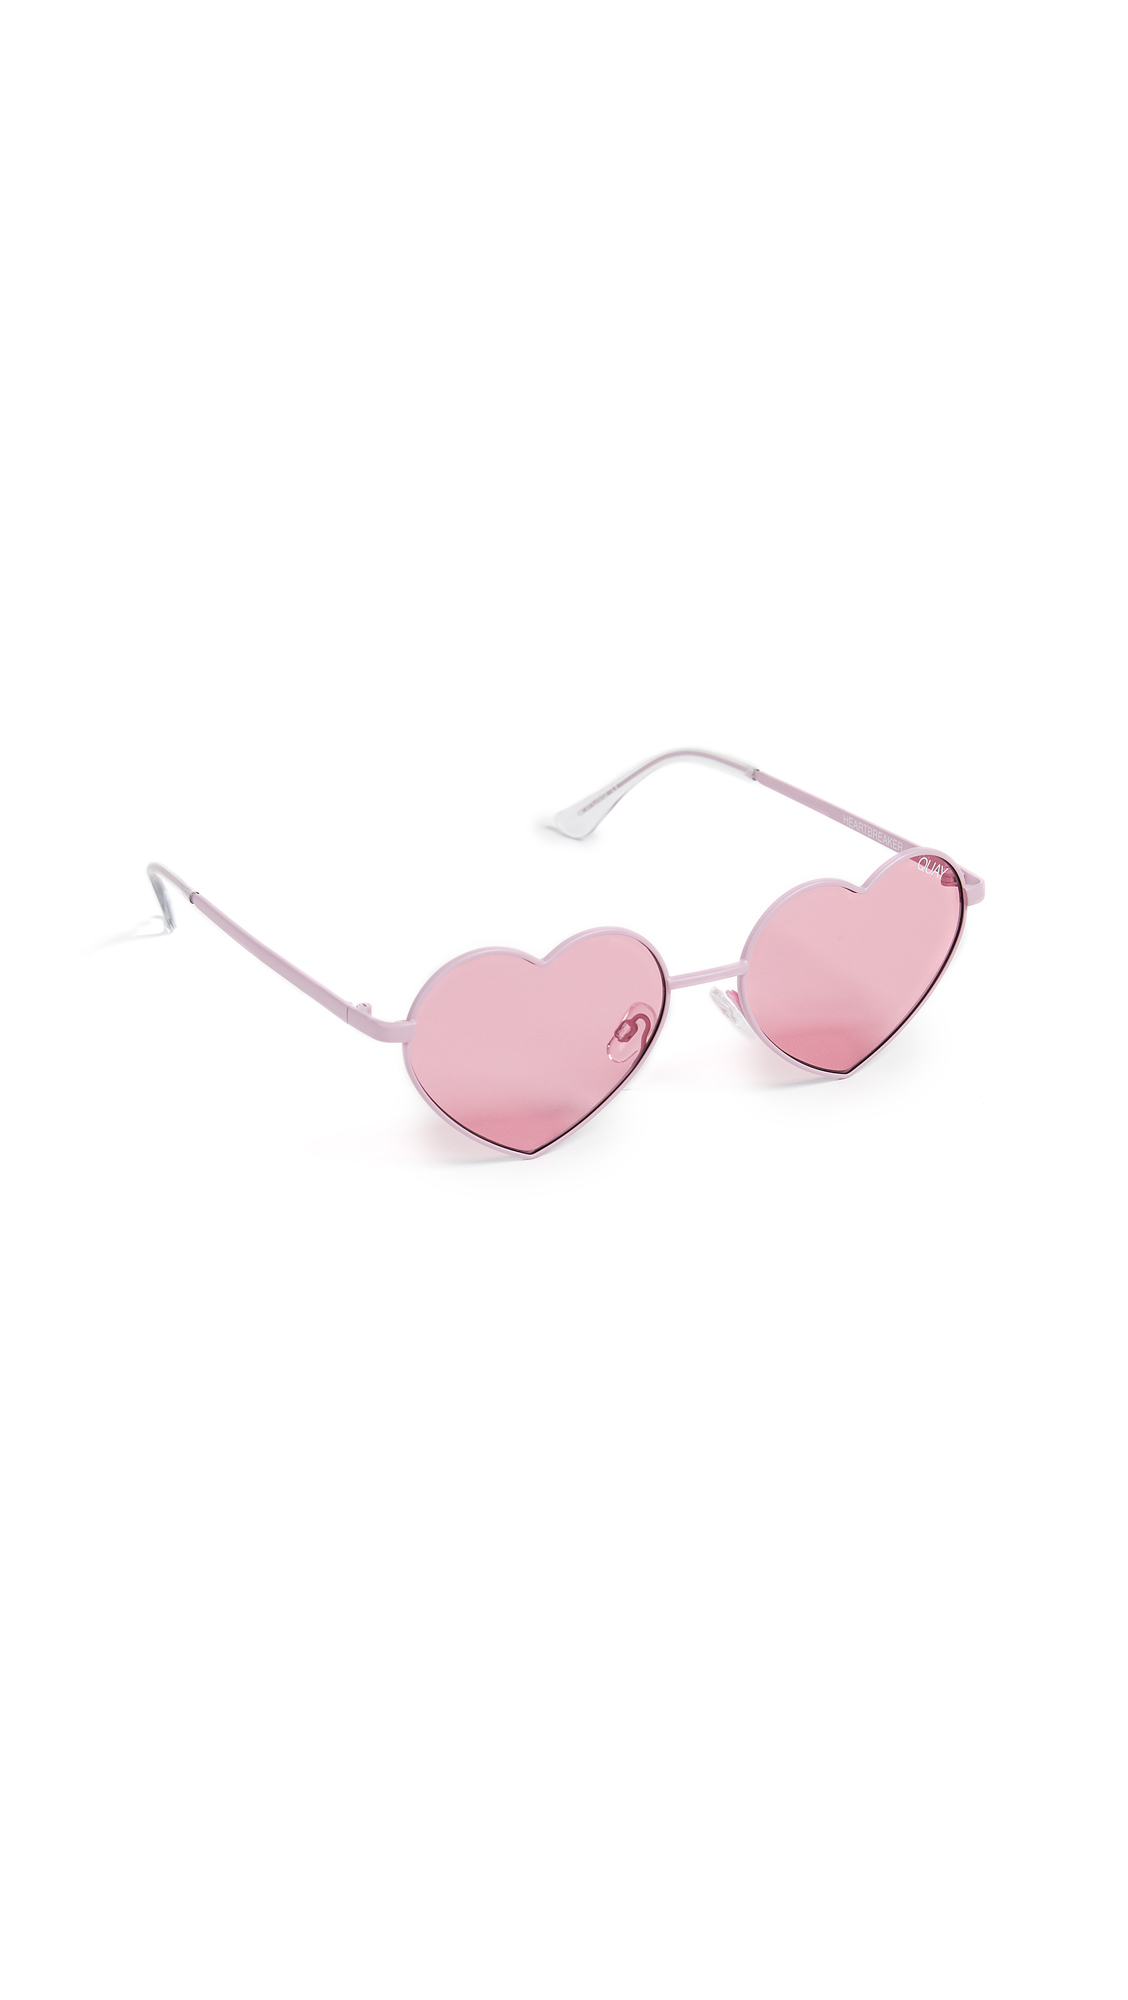 Quay Heartbreaker Sunglasses In Pink/Pink